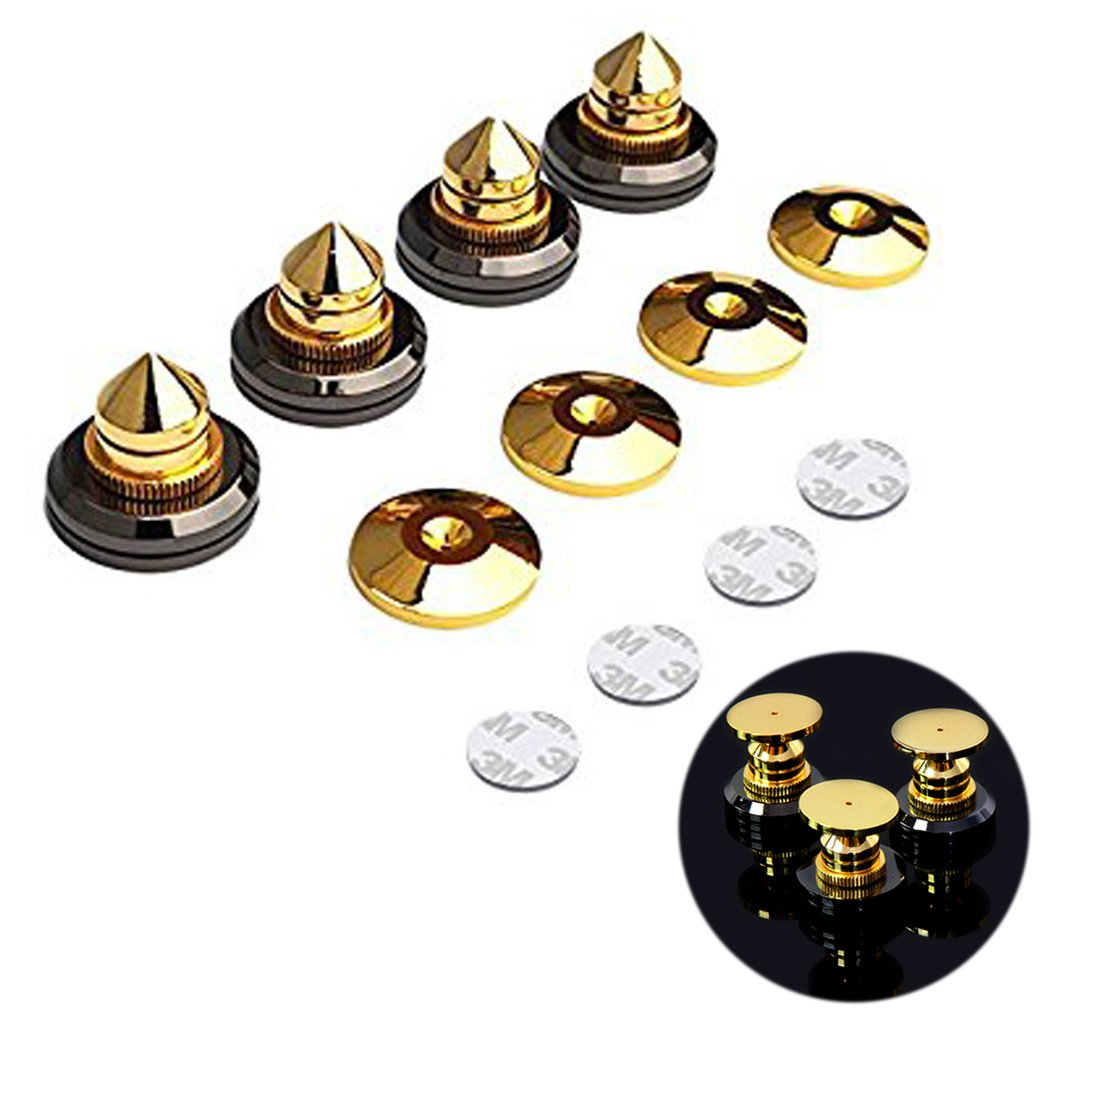 4pcs Golden giradischi isolamento speaker Spikes CD audio amplificatore antiurto tappetino supporto piedi Spike stand piedini con 4pcs 3  m biadesivo Adhensive Leiqin